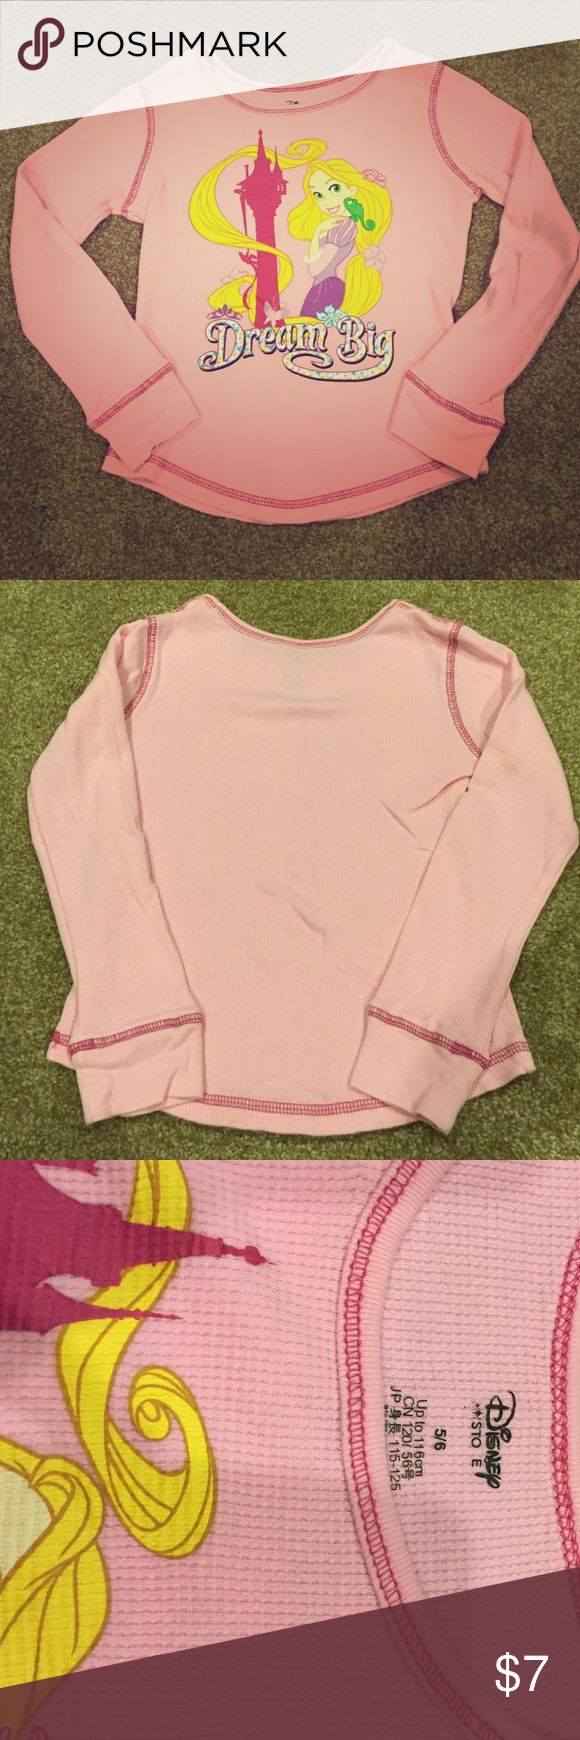 Long sleeve Rapunzel shirt So cute and comfy for the princess in your life!  Worn only a couple of times.  Price final unless bundled.  Please check out my other listings to bundle and save $! Disney Shirts & Tops Tees - Long Sleeve